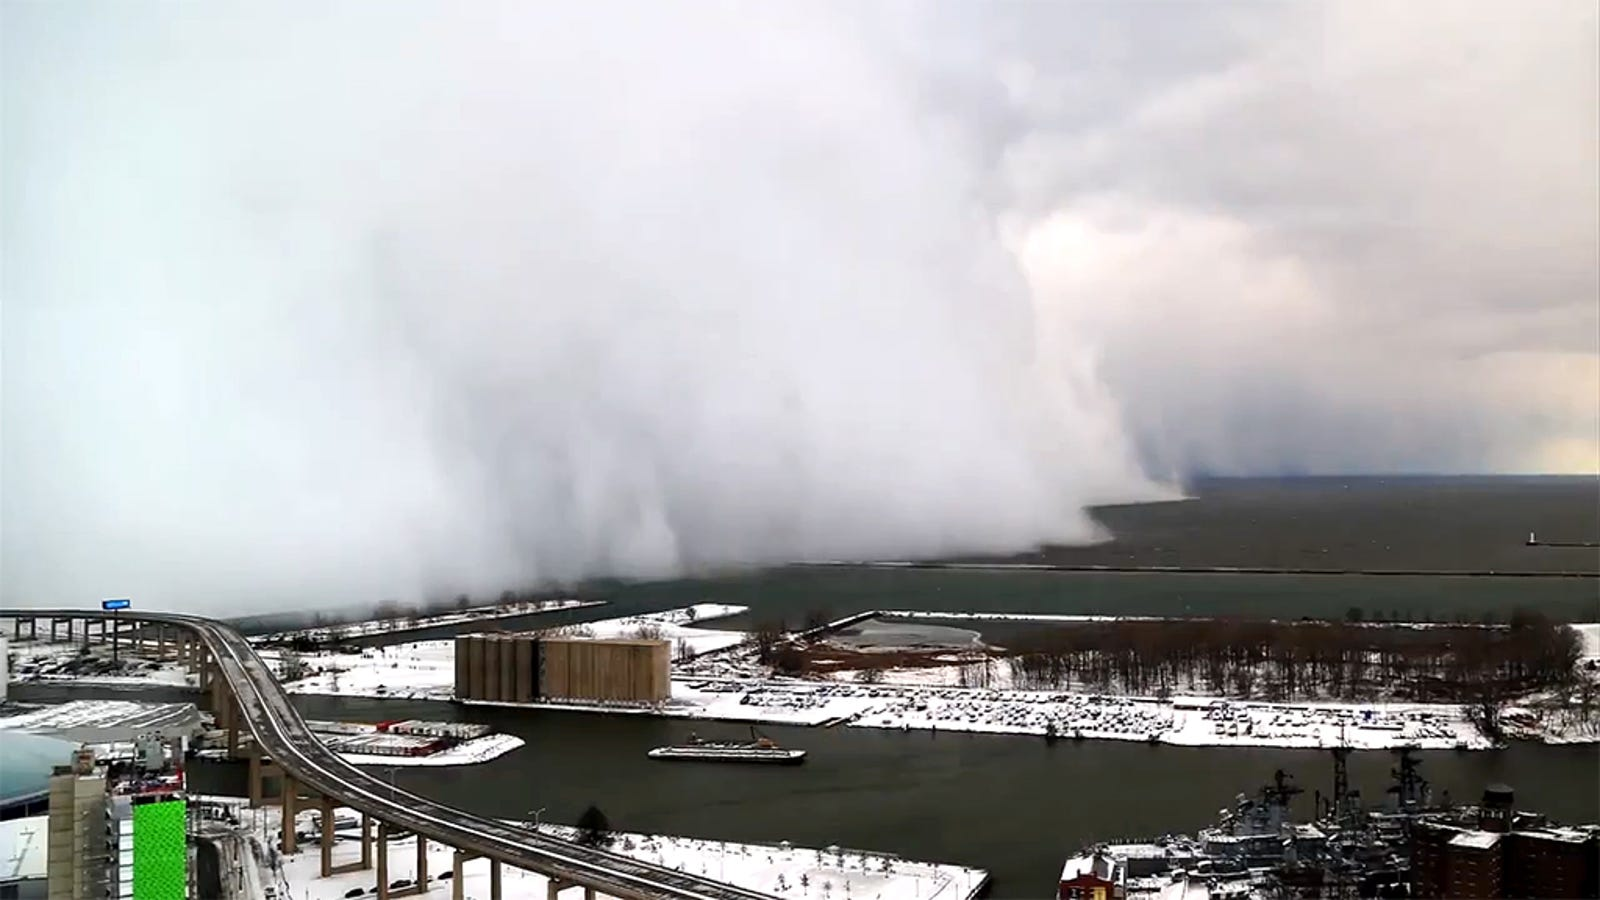 Impressive time-lapse of the snow wall that swallowed Buffalo, NY